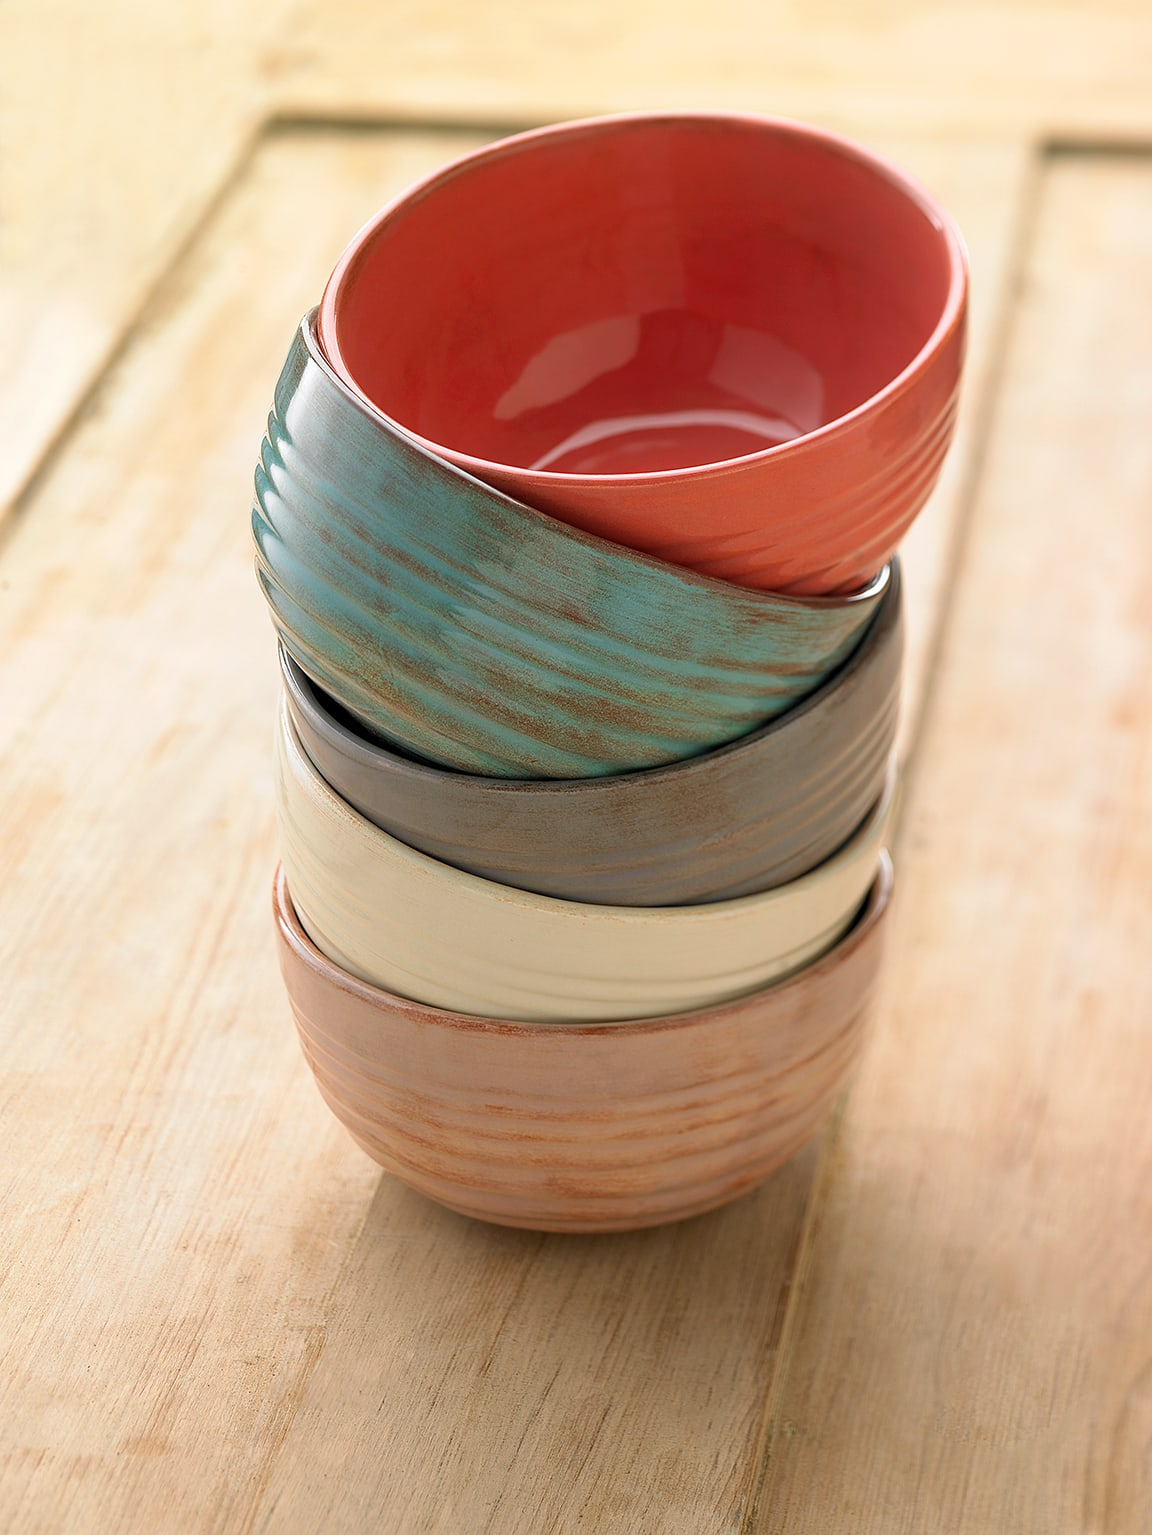 Gare stacked bowls